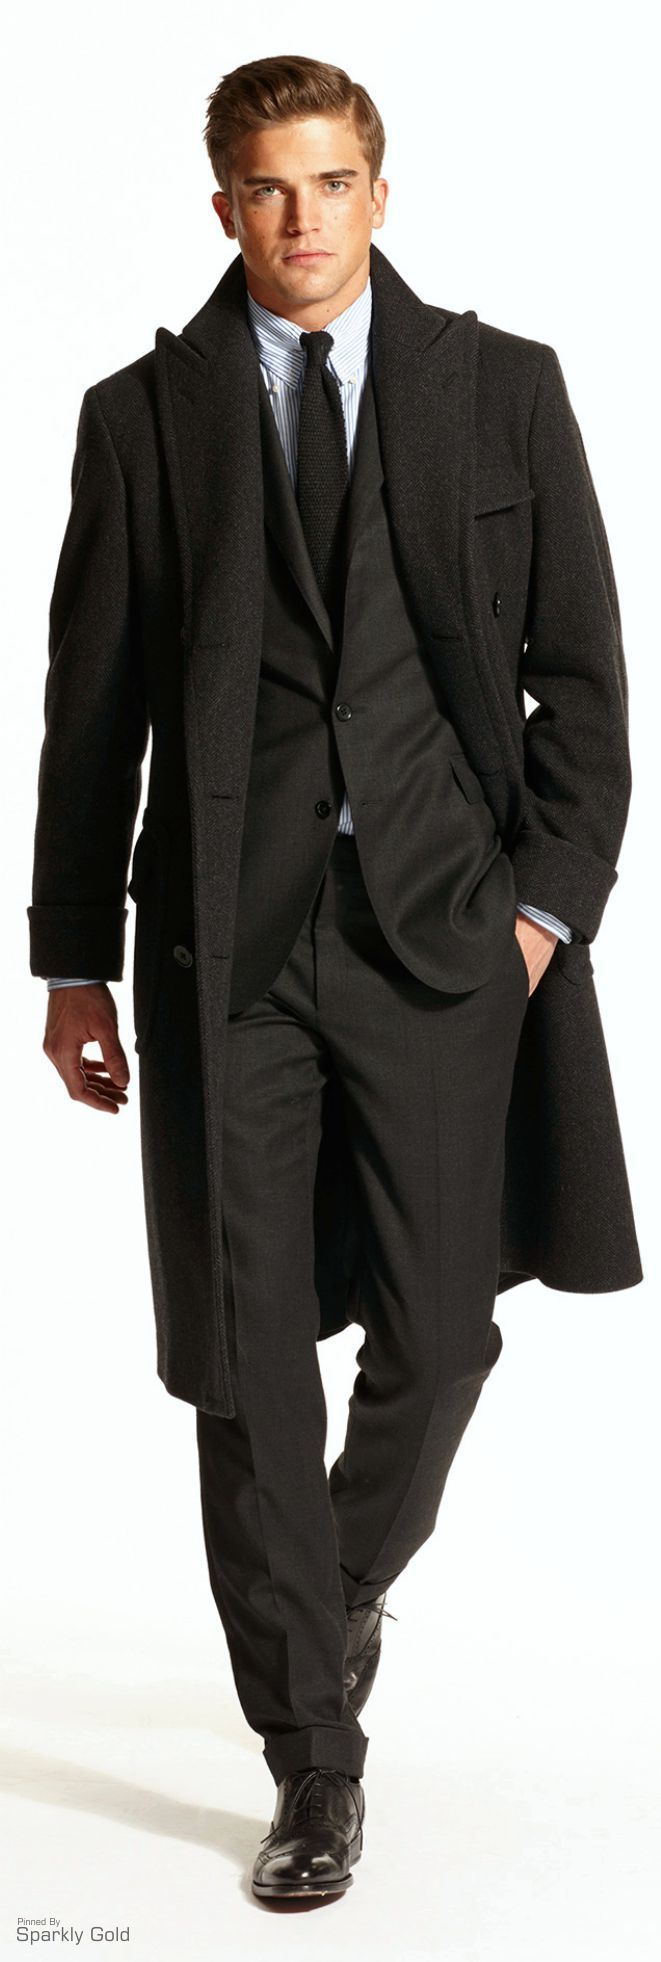 I like this overcoat quite a bit, and the suit underneath is a nice deep charcoal. The shirt & tie combo is a bit weird looking, but overall quite a very good look